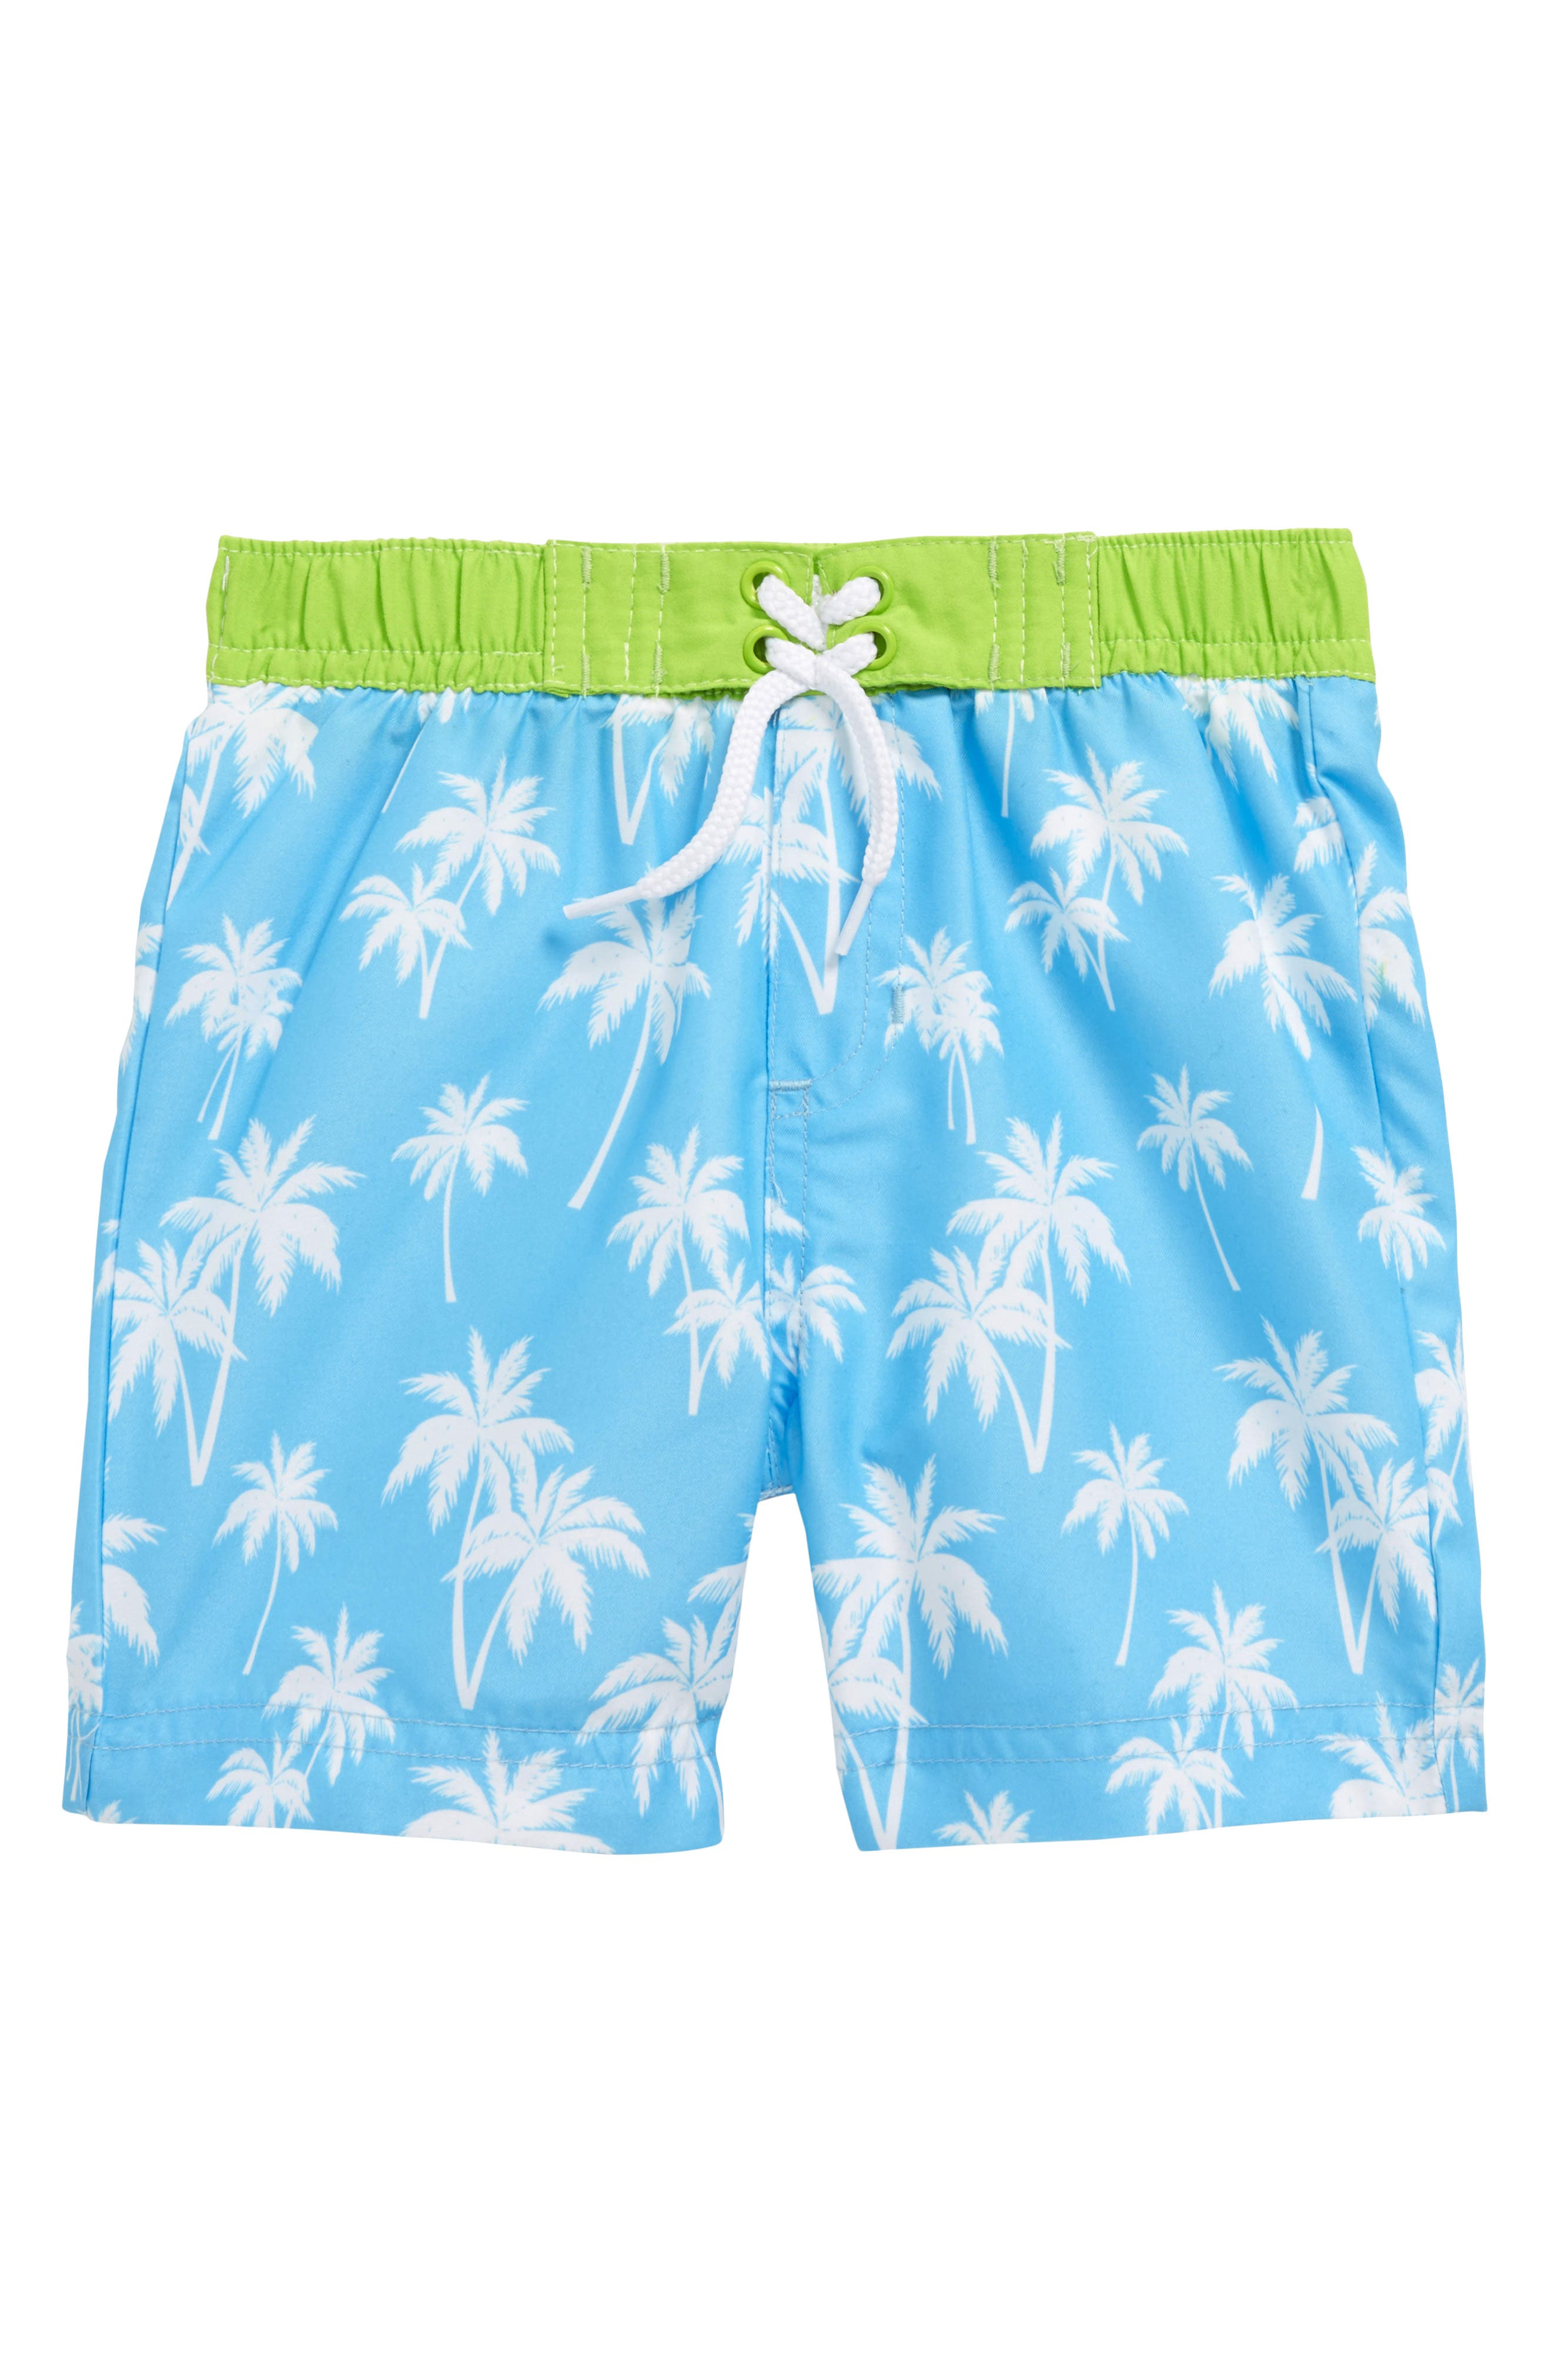 Alternate Image 1 Selected - Little Me Palm Tree Swim Trunks (Baby Boys)